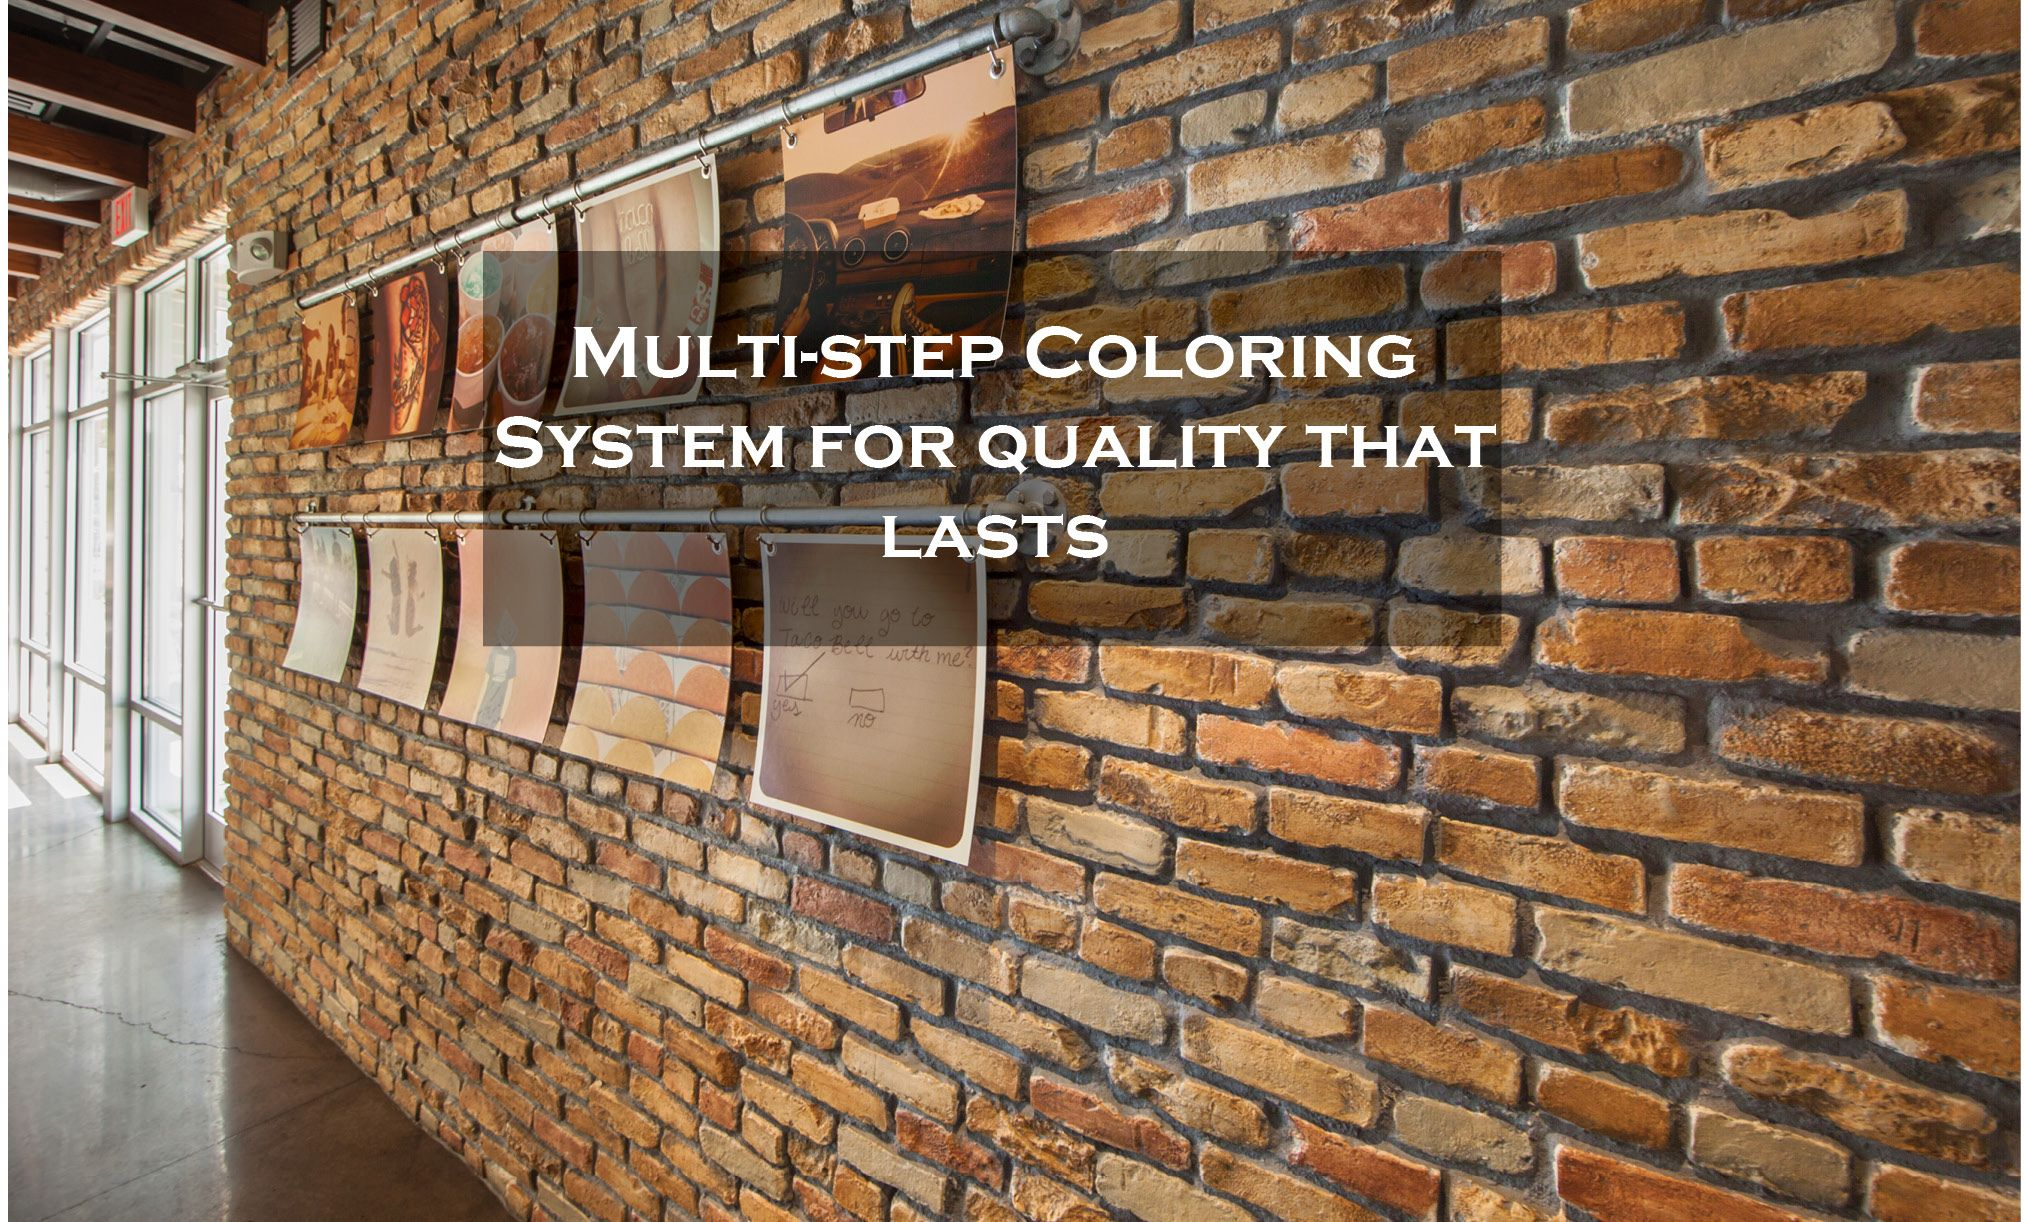 Hard To Believe That That Isnt Real Brick Diy Panels So Easy To Install Loft Look Stl Brick F Faux Stone Sheets Faux Brick Panels Manufactured Stone Veneer